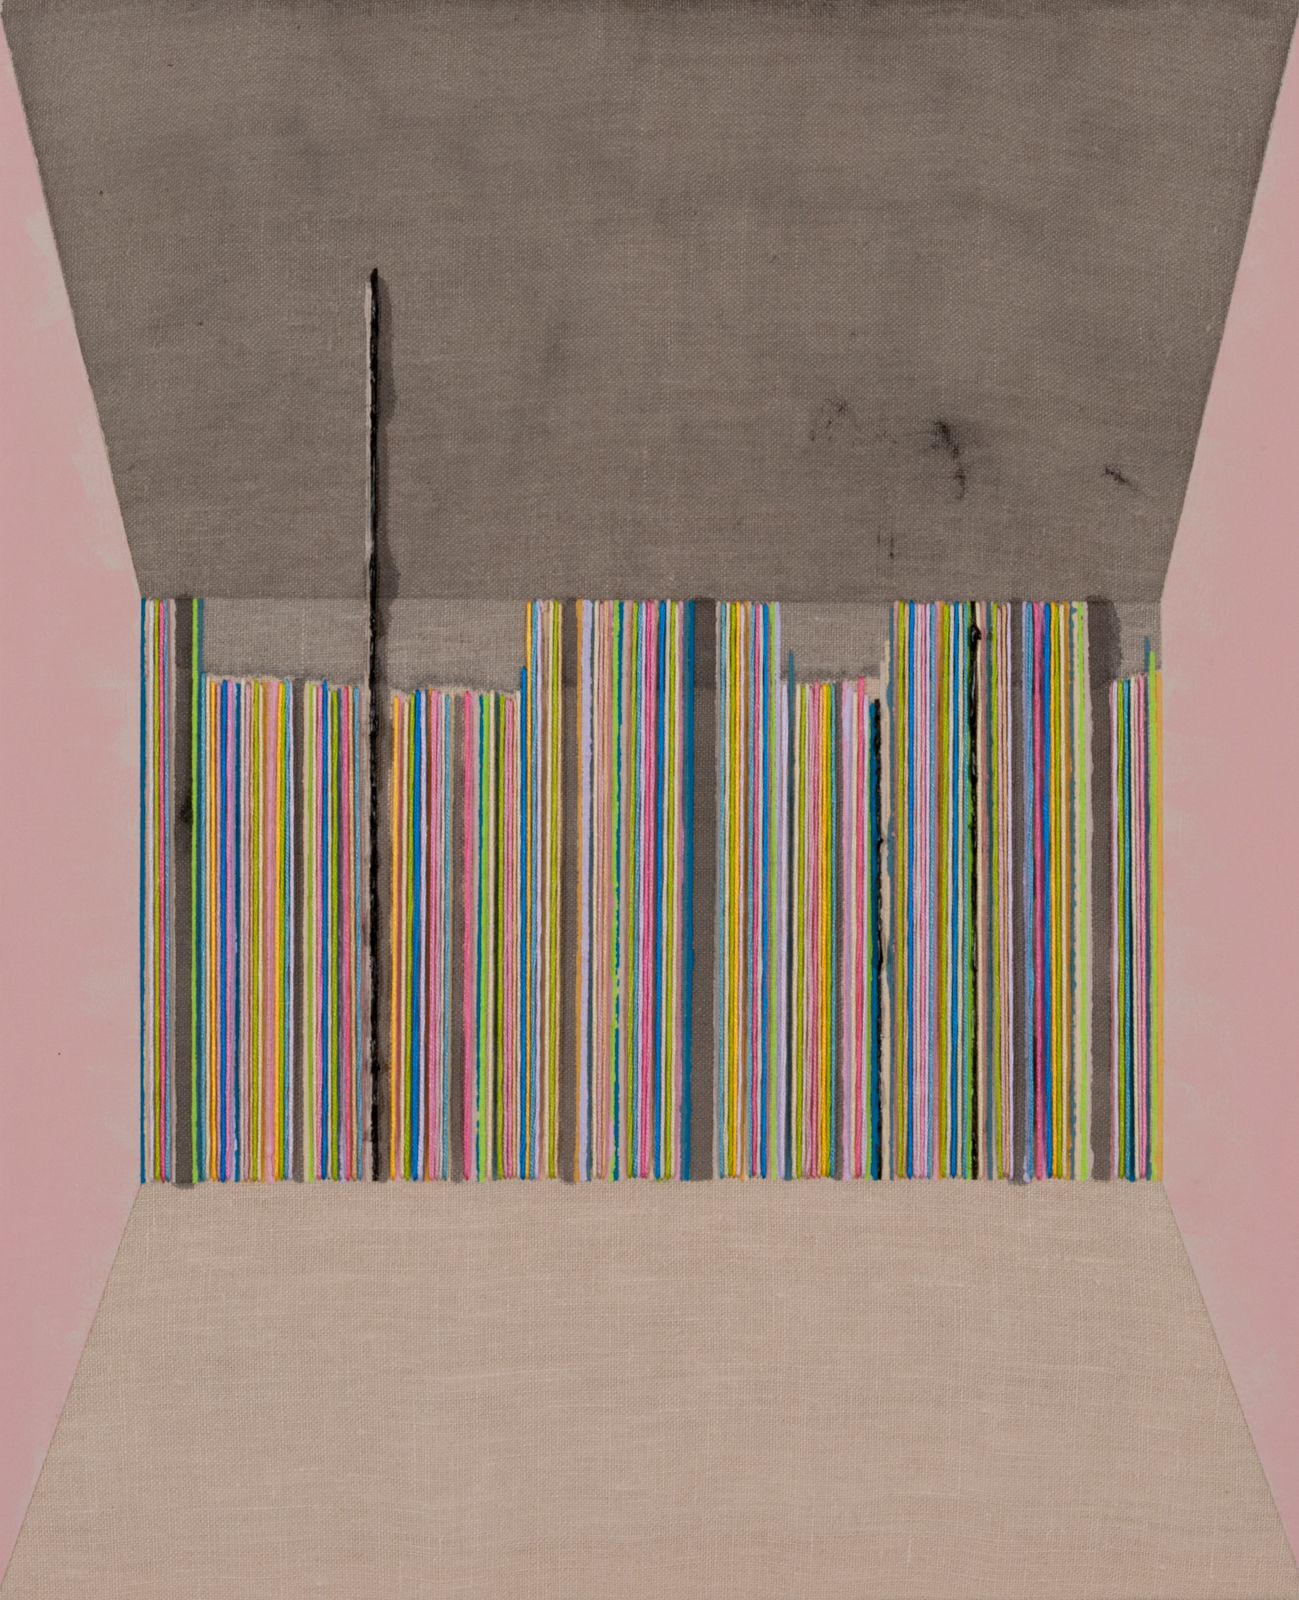 7 - LINE UP! 2, 2014 17x14  Flashe, ink, acrylic and embroidery floss on linen.jpg